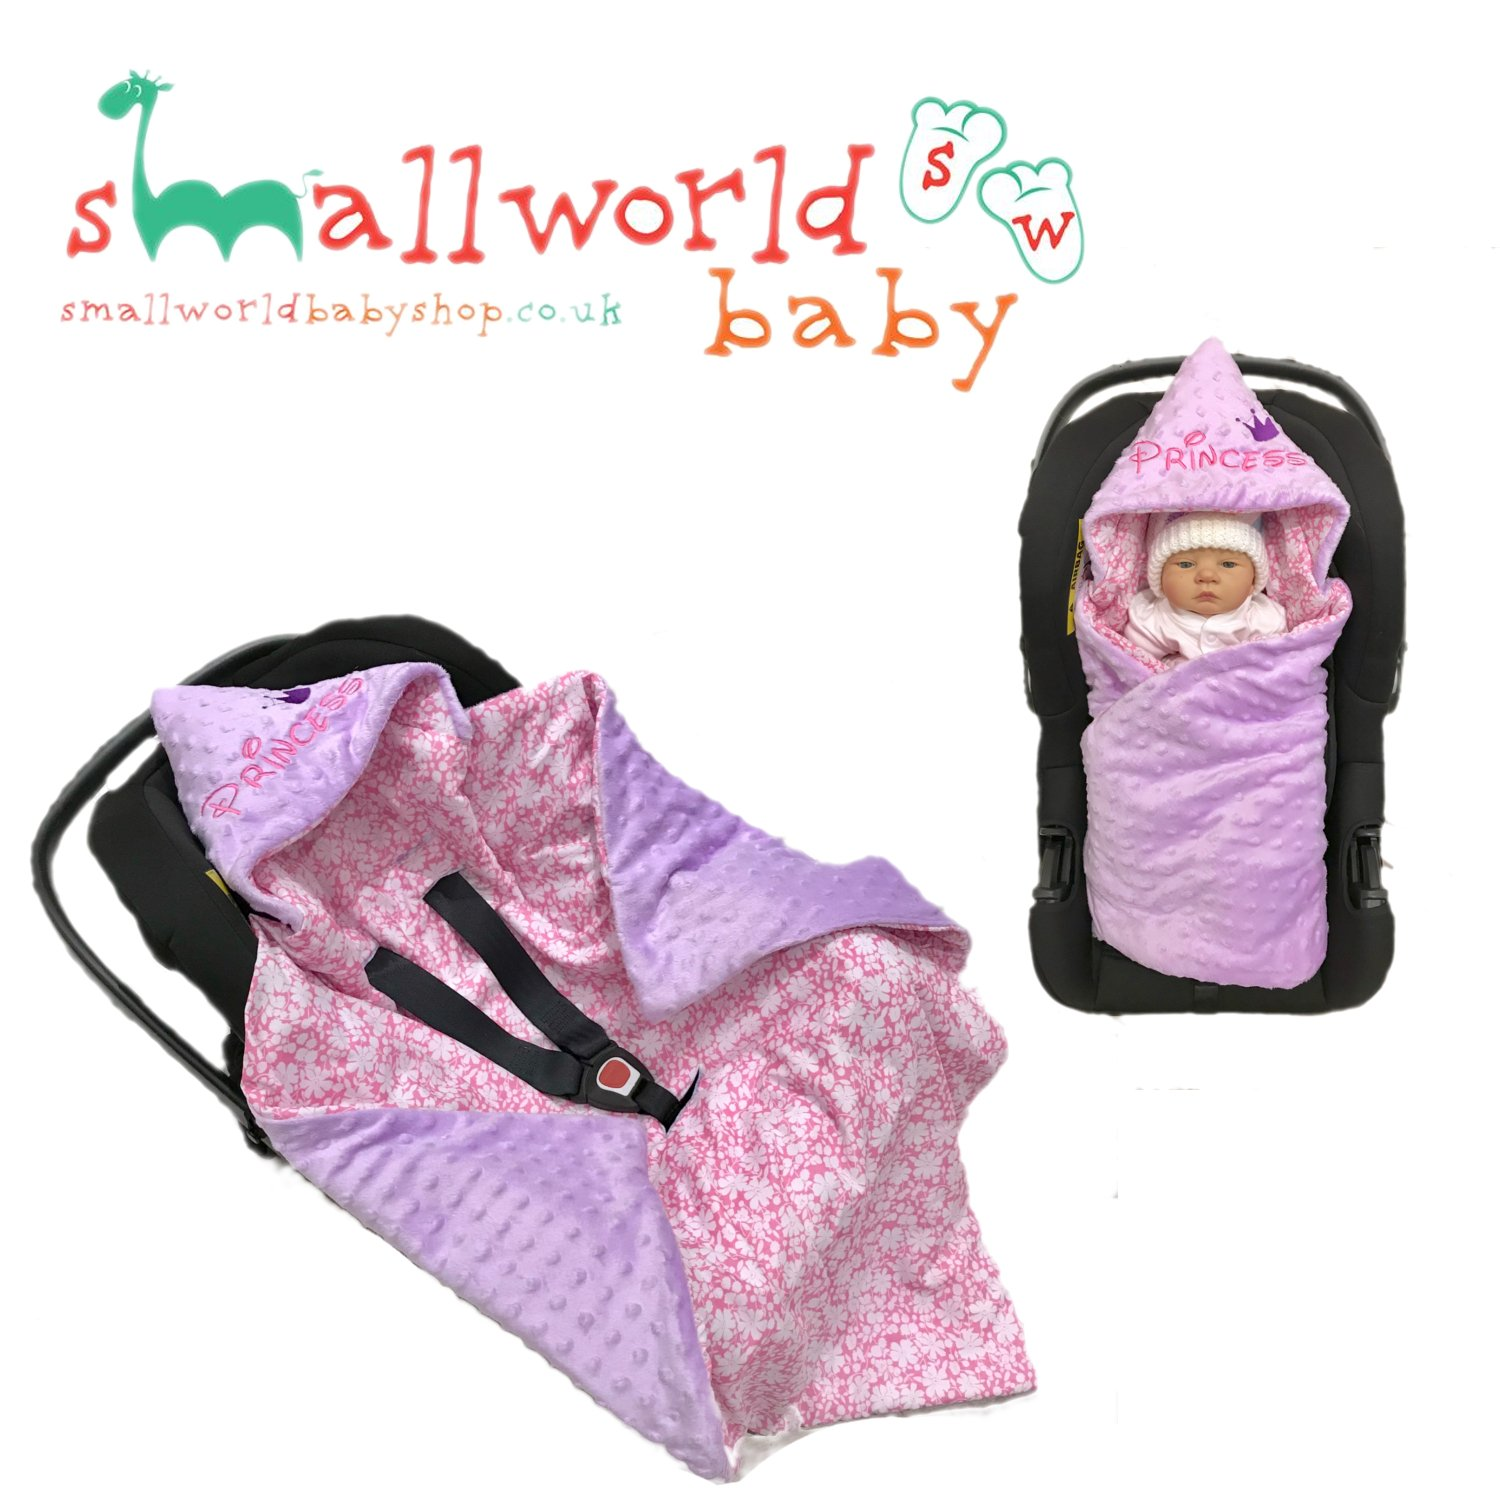 Baby CAR SEAT Swaddle WRAP Personalised Blanket Sleeping Bag Universal Boys Girls (Next Day Dispatch) Small World Baby Shop